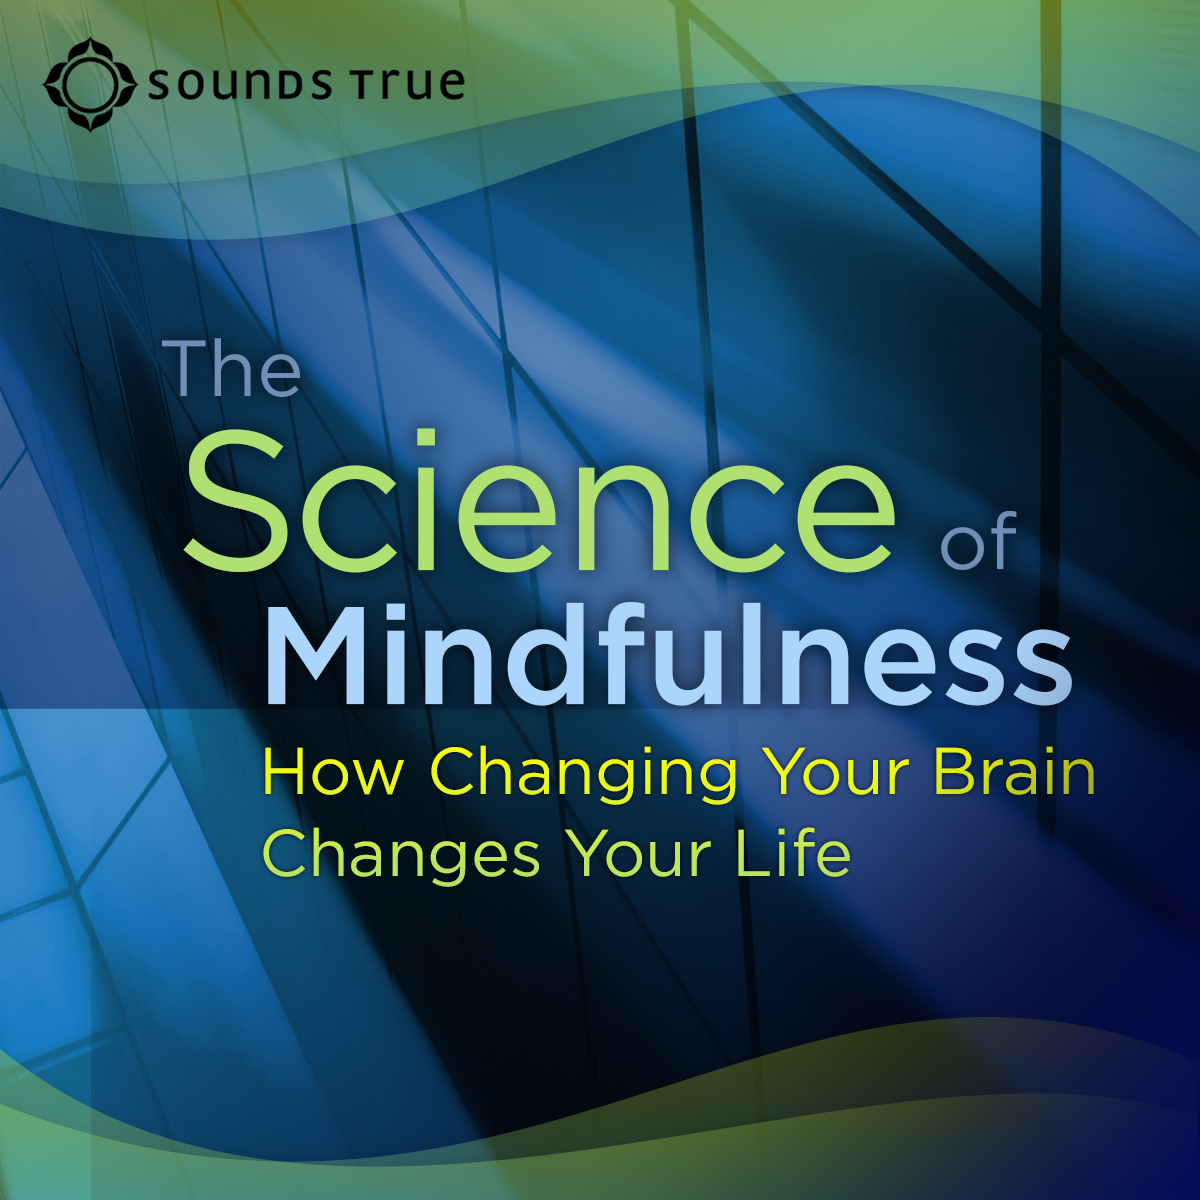 The Science of Mindfulness: How Changing Your Brain Changes Your Life